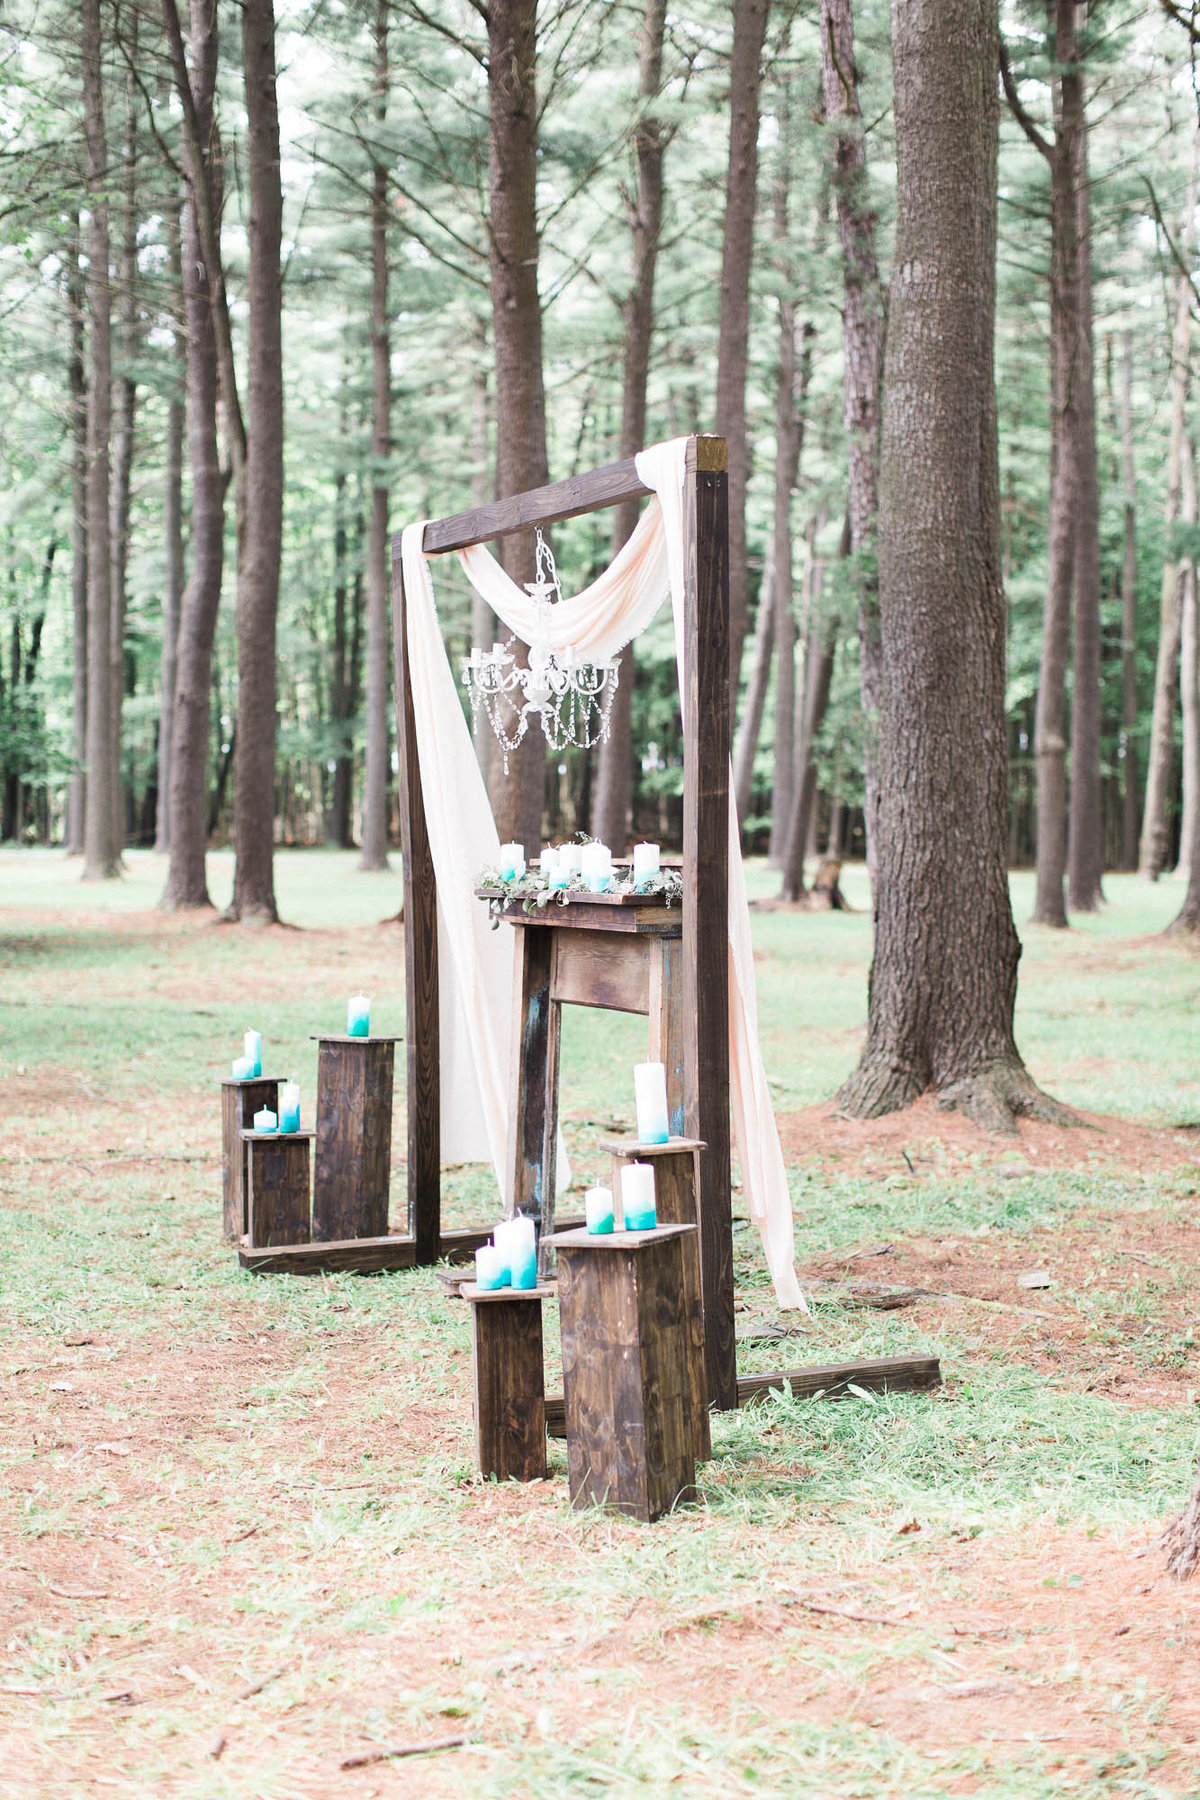 events-by-carianne-event-planner-wedding-planner-outdoor-wedding-anthropologie-wedding-new-england-boston-rhode-island-maine-new-hampshire-anna-elizabeth-photography 11